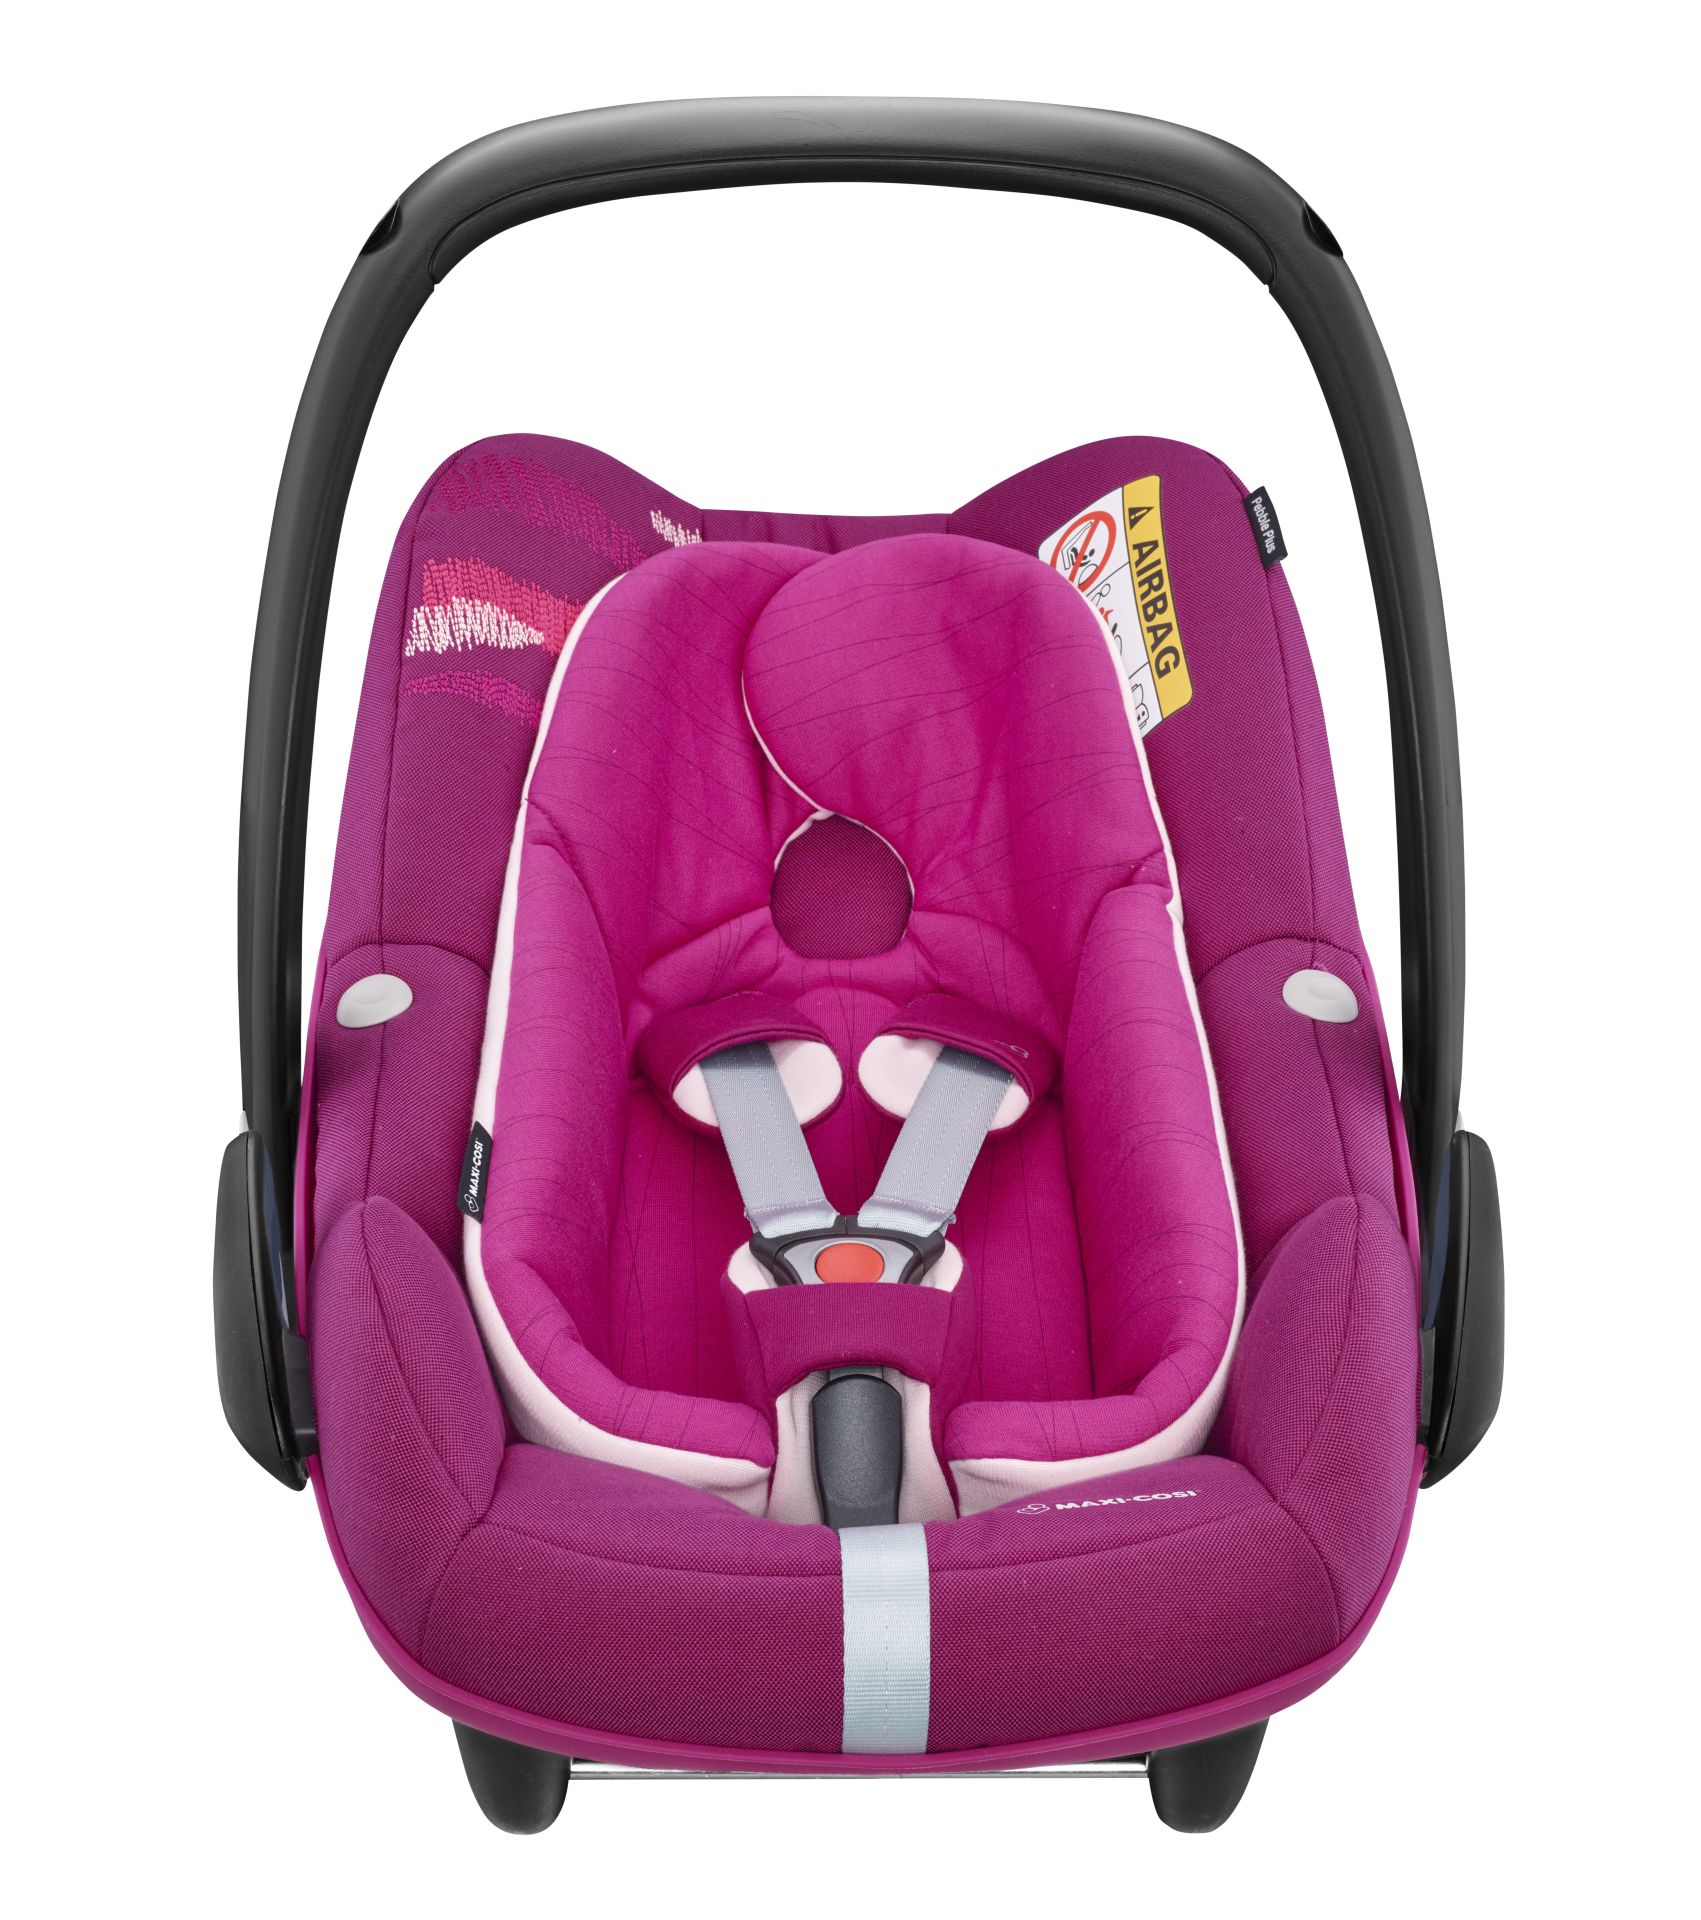 maxi cosi infant car seat pebble plus 2018 frequency pink buy at kidsroom car seats. Black Bedroom Furniture Sets. Home Design Ideas